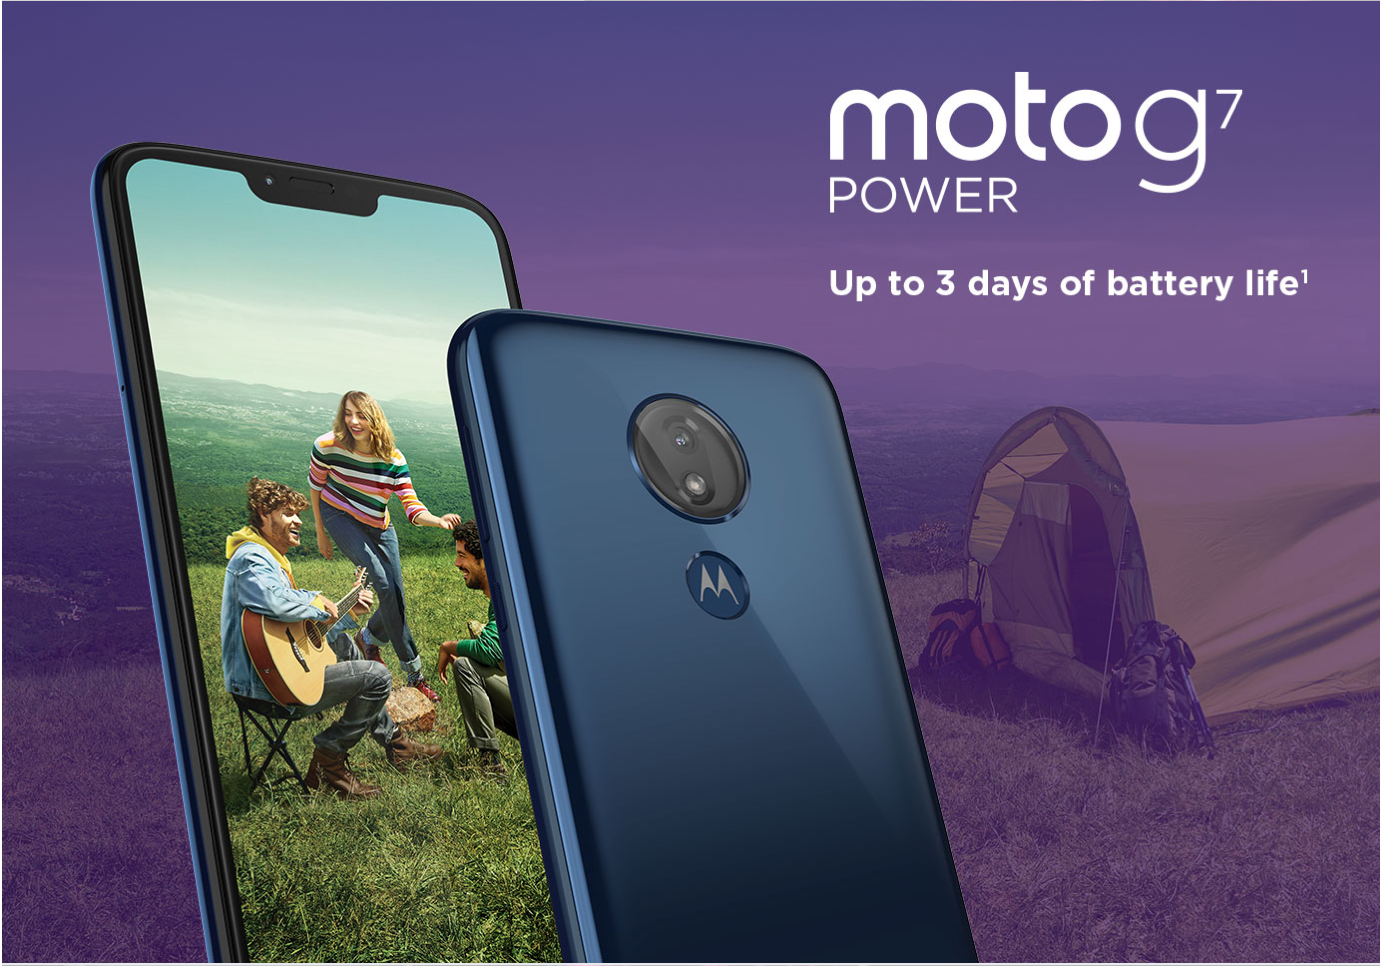 moto g⁷ power | Price, Specs & Reviews | Metro® by T-Mobile